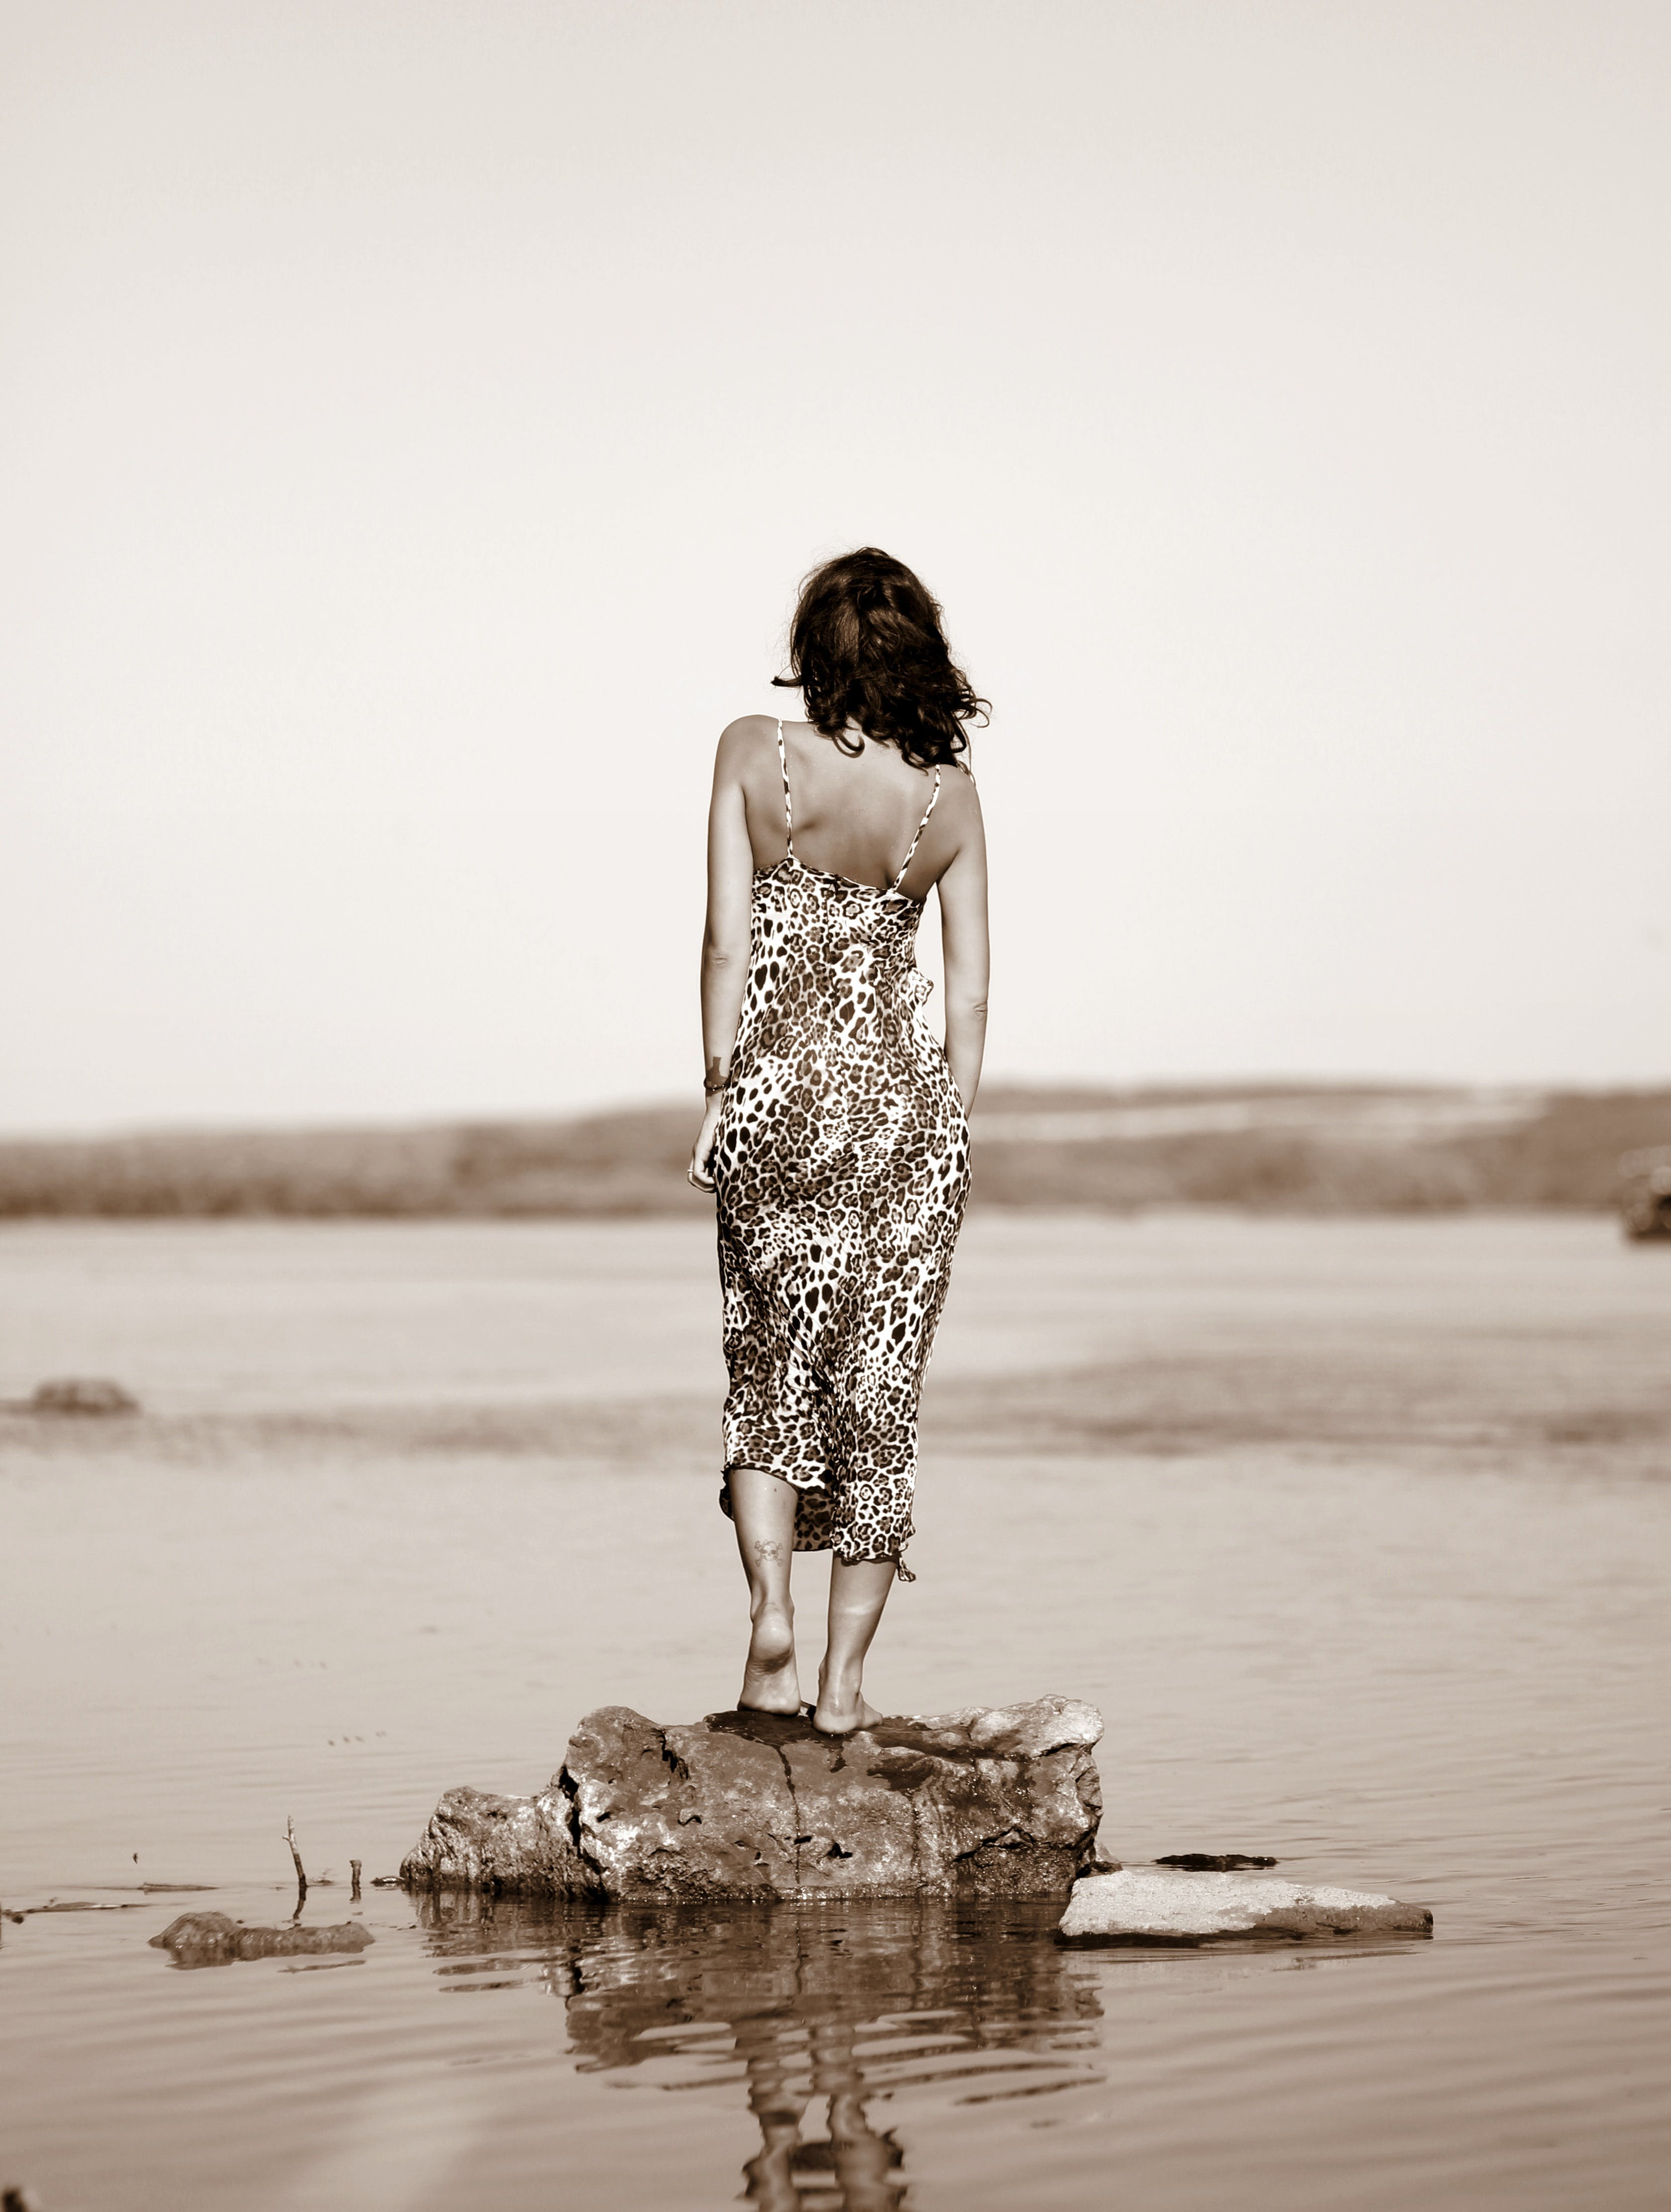 Woman Wearing Leopard Print Dress Standing on Stone on Body of Water